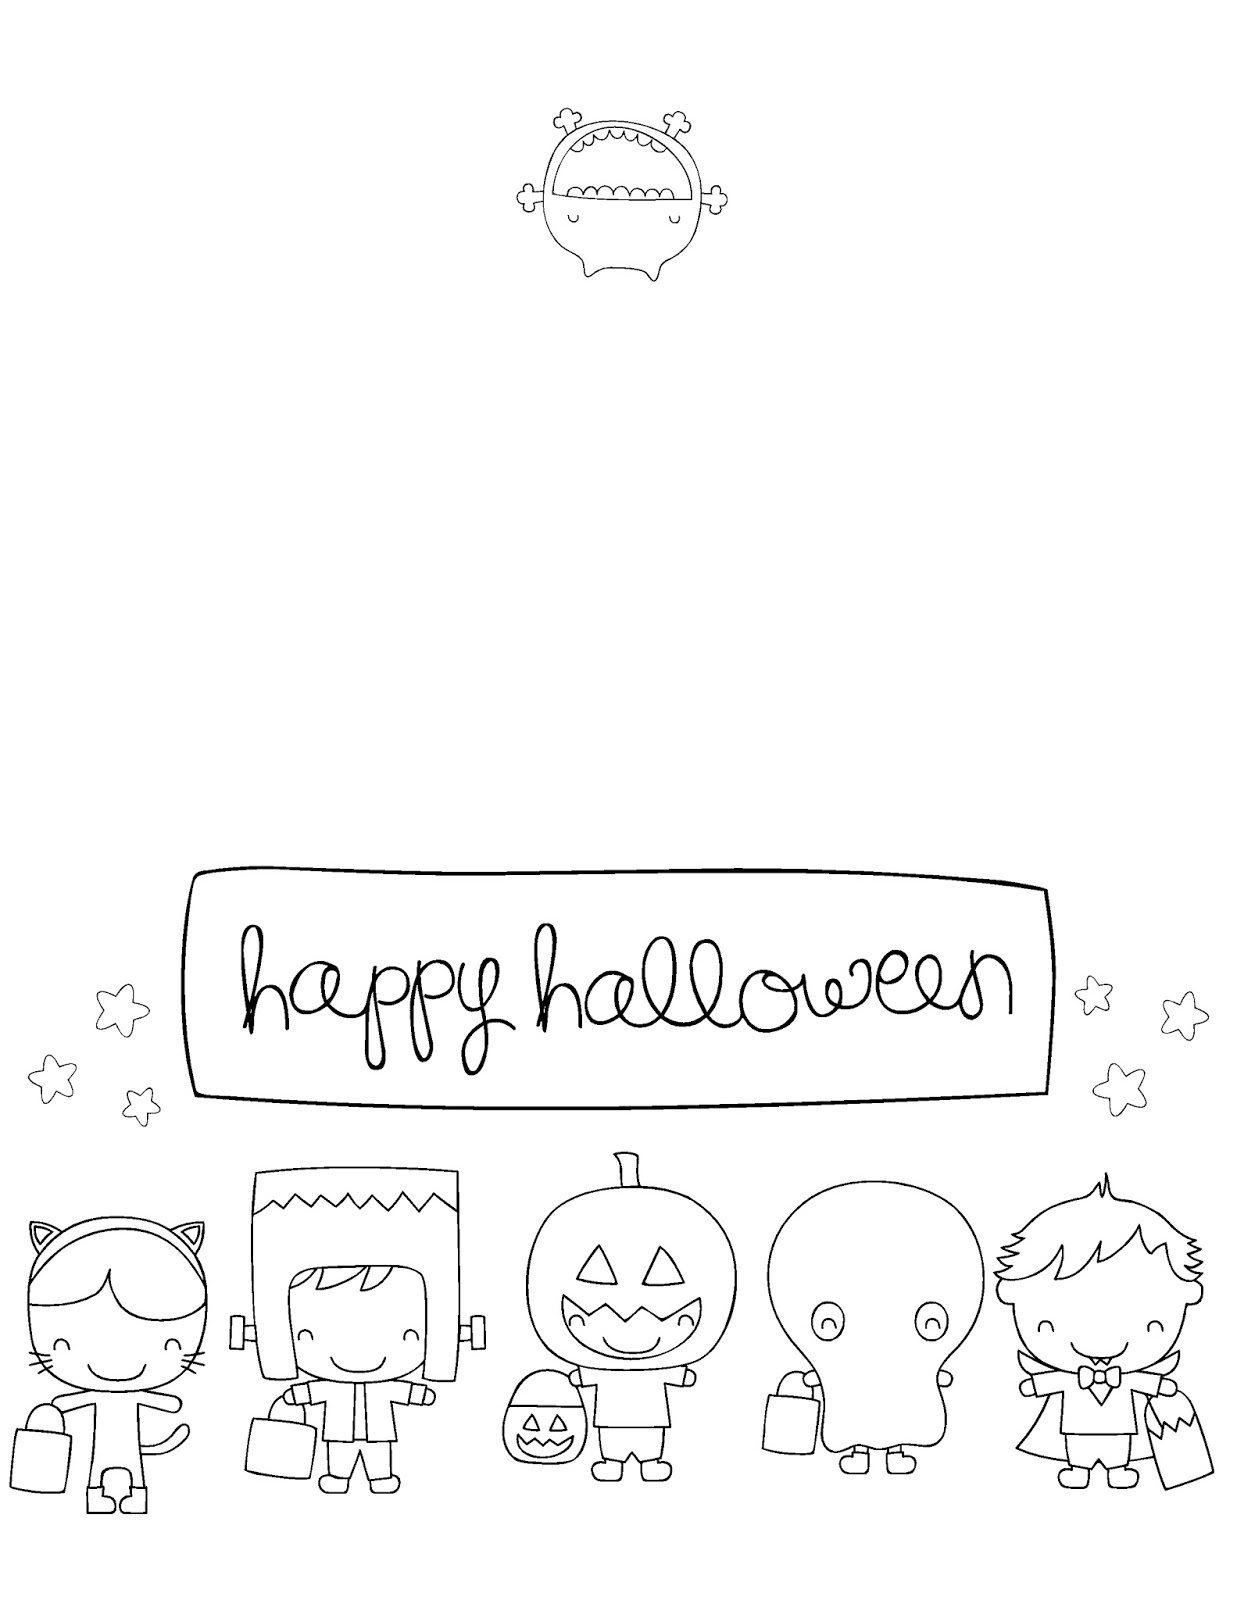 Printable Halloween Cards To Color - Acmsfsu - Printable Halloween Cards To Color For Free